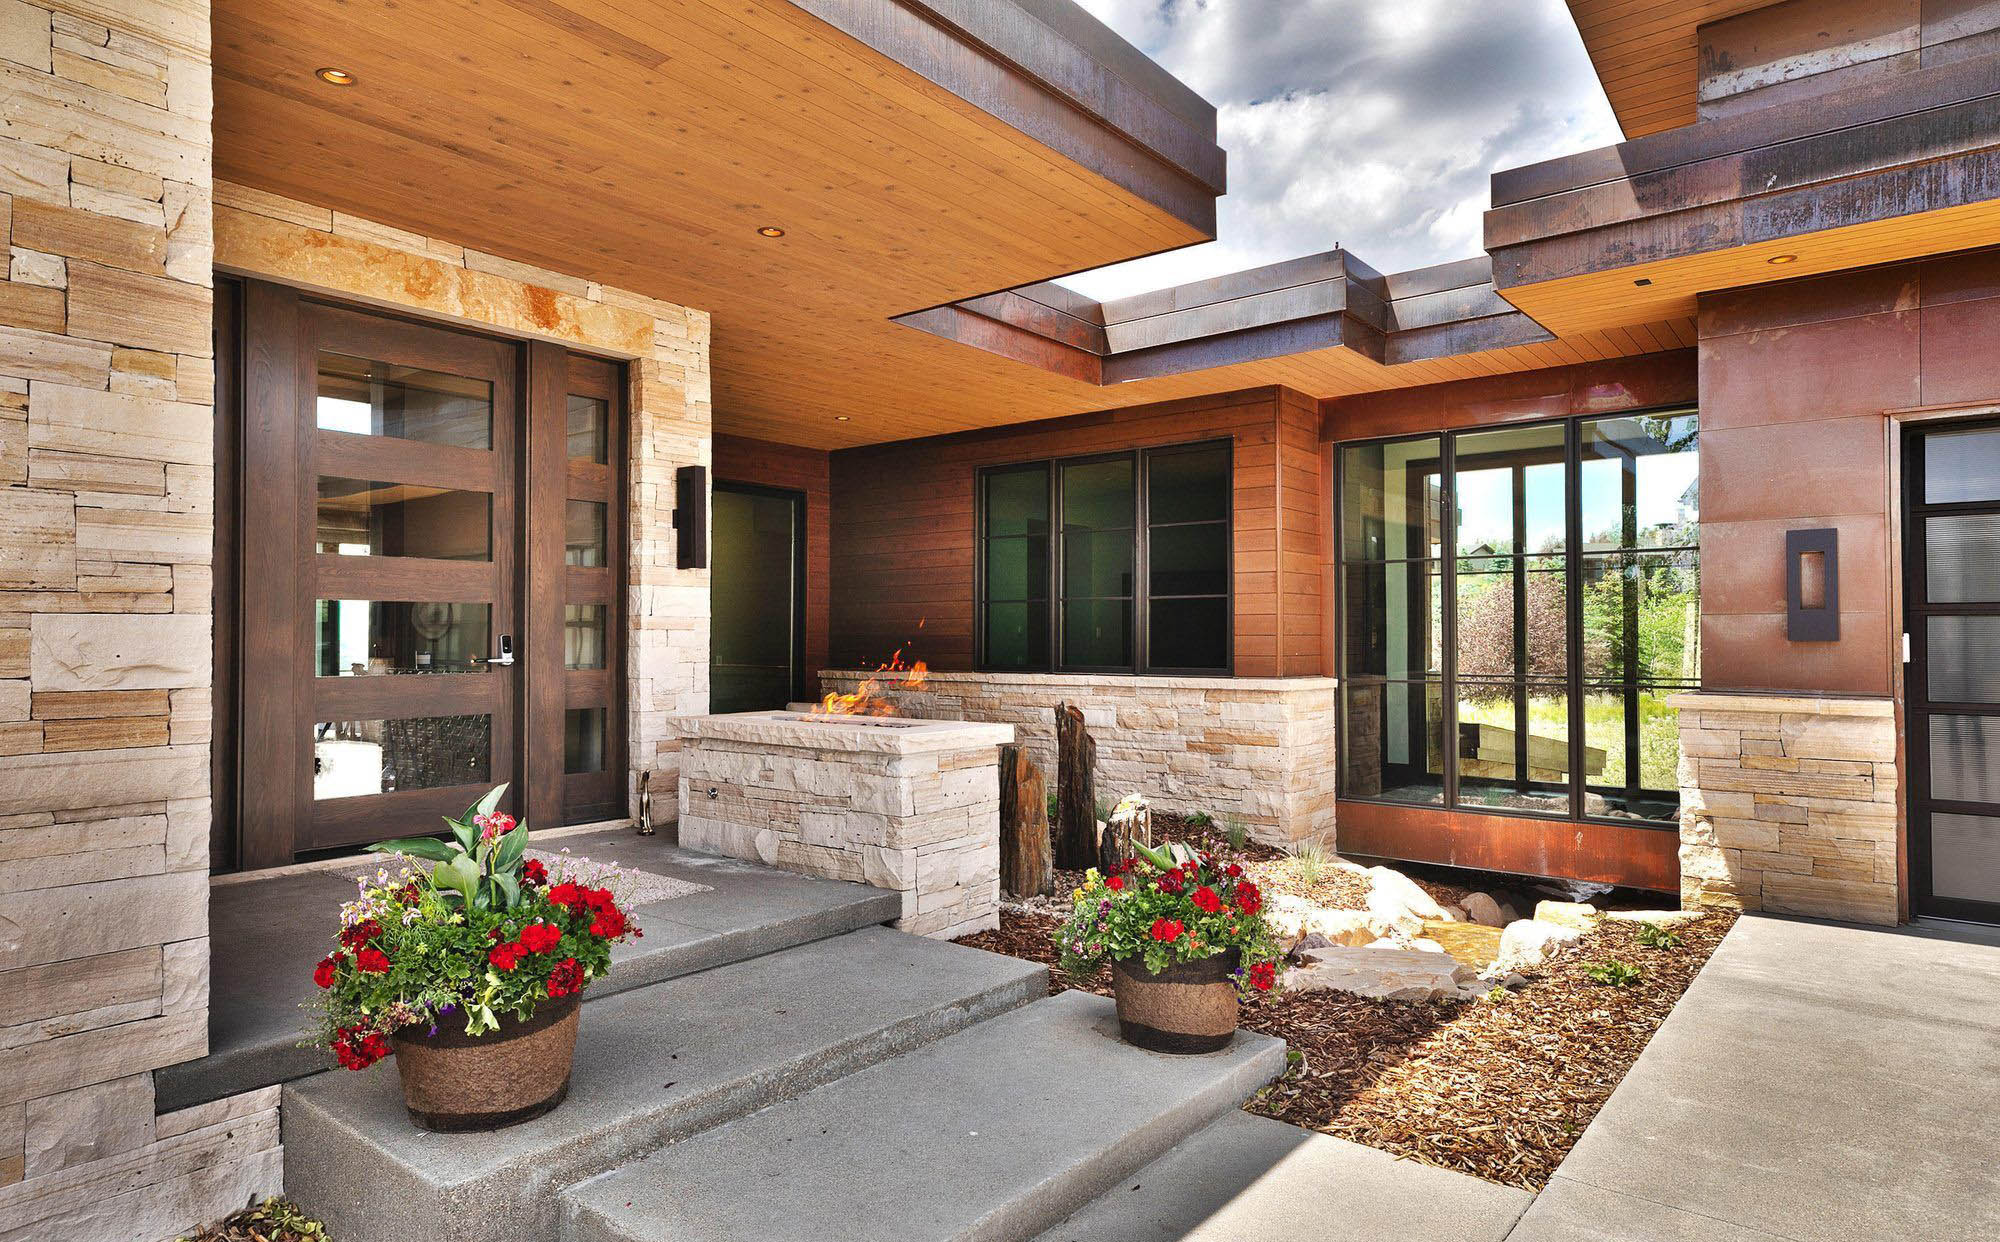 modern front porch design with cantilever roof, concrete porch, flowers and planters, real cream colored stone siding